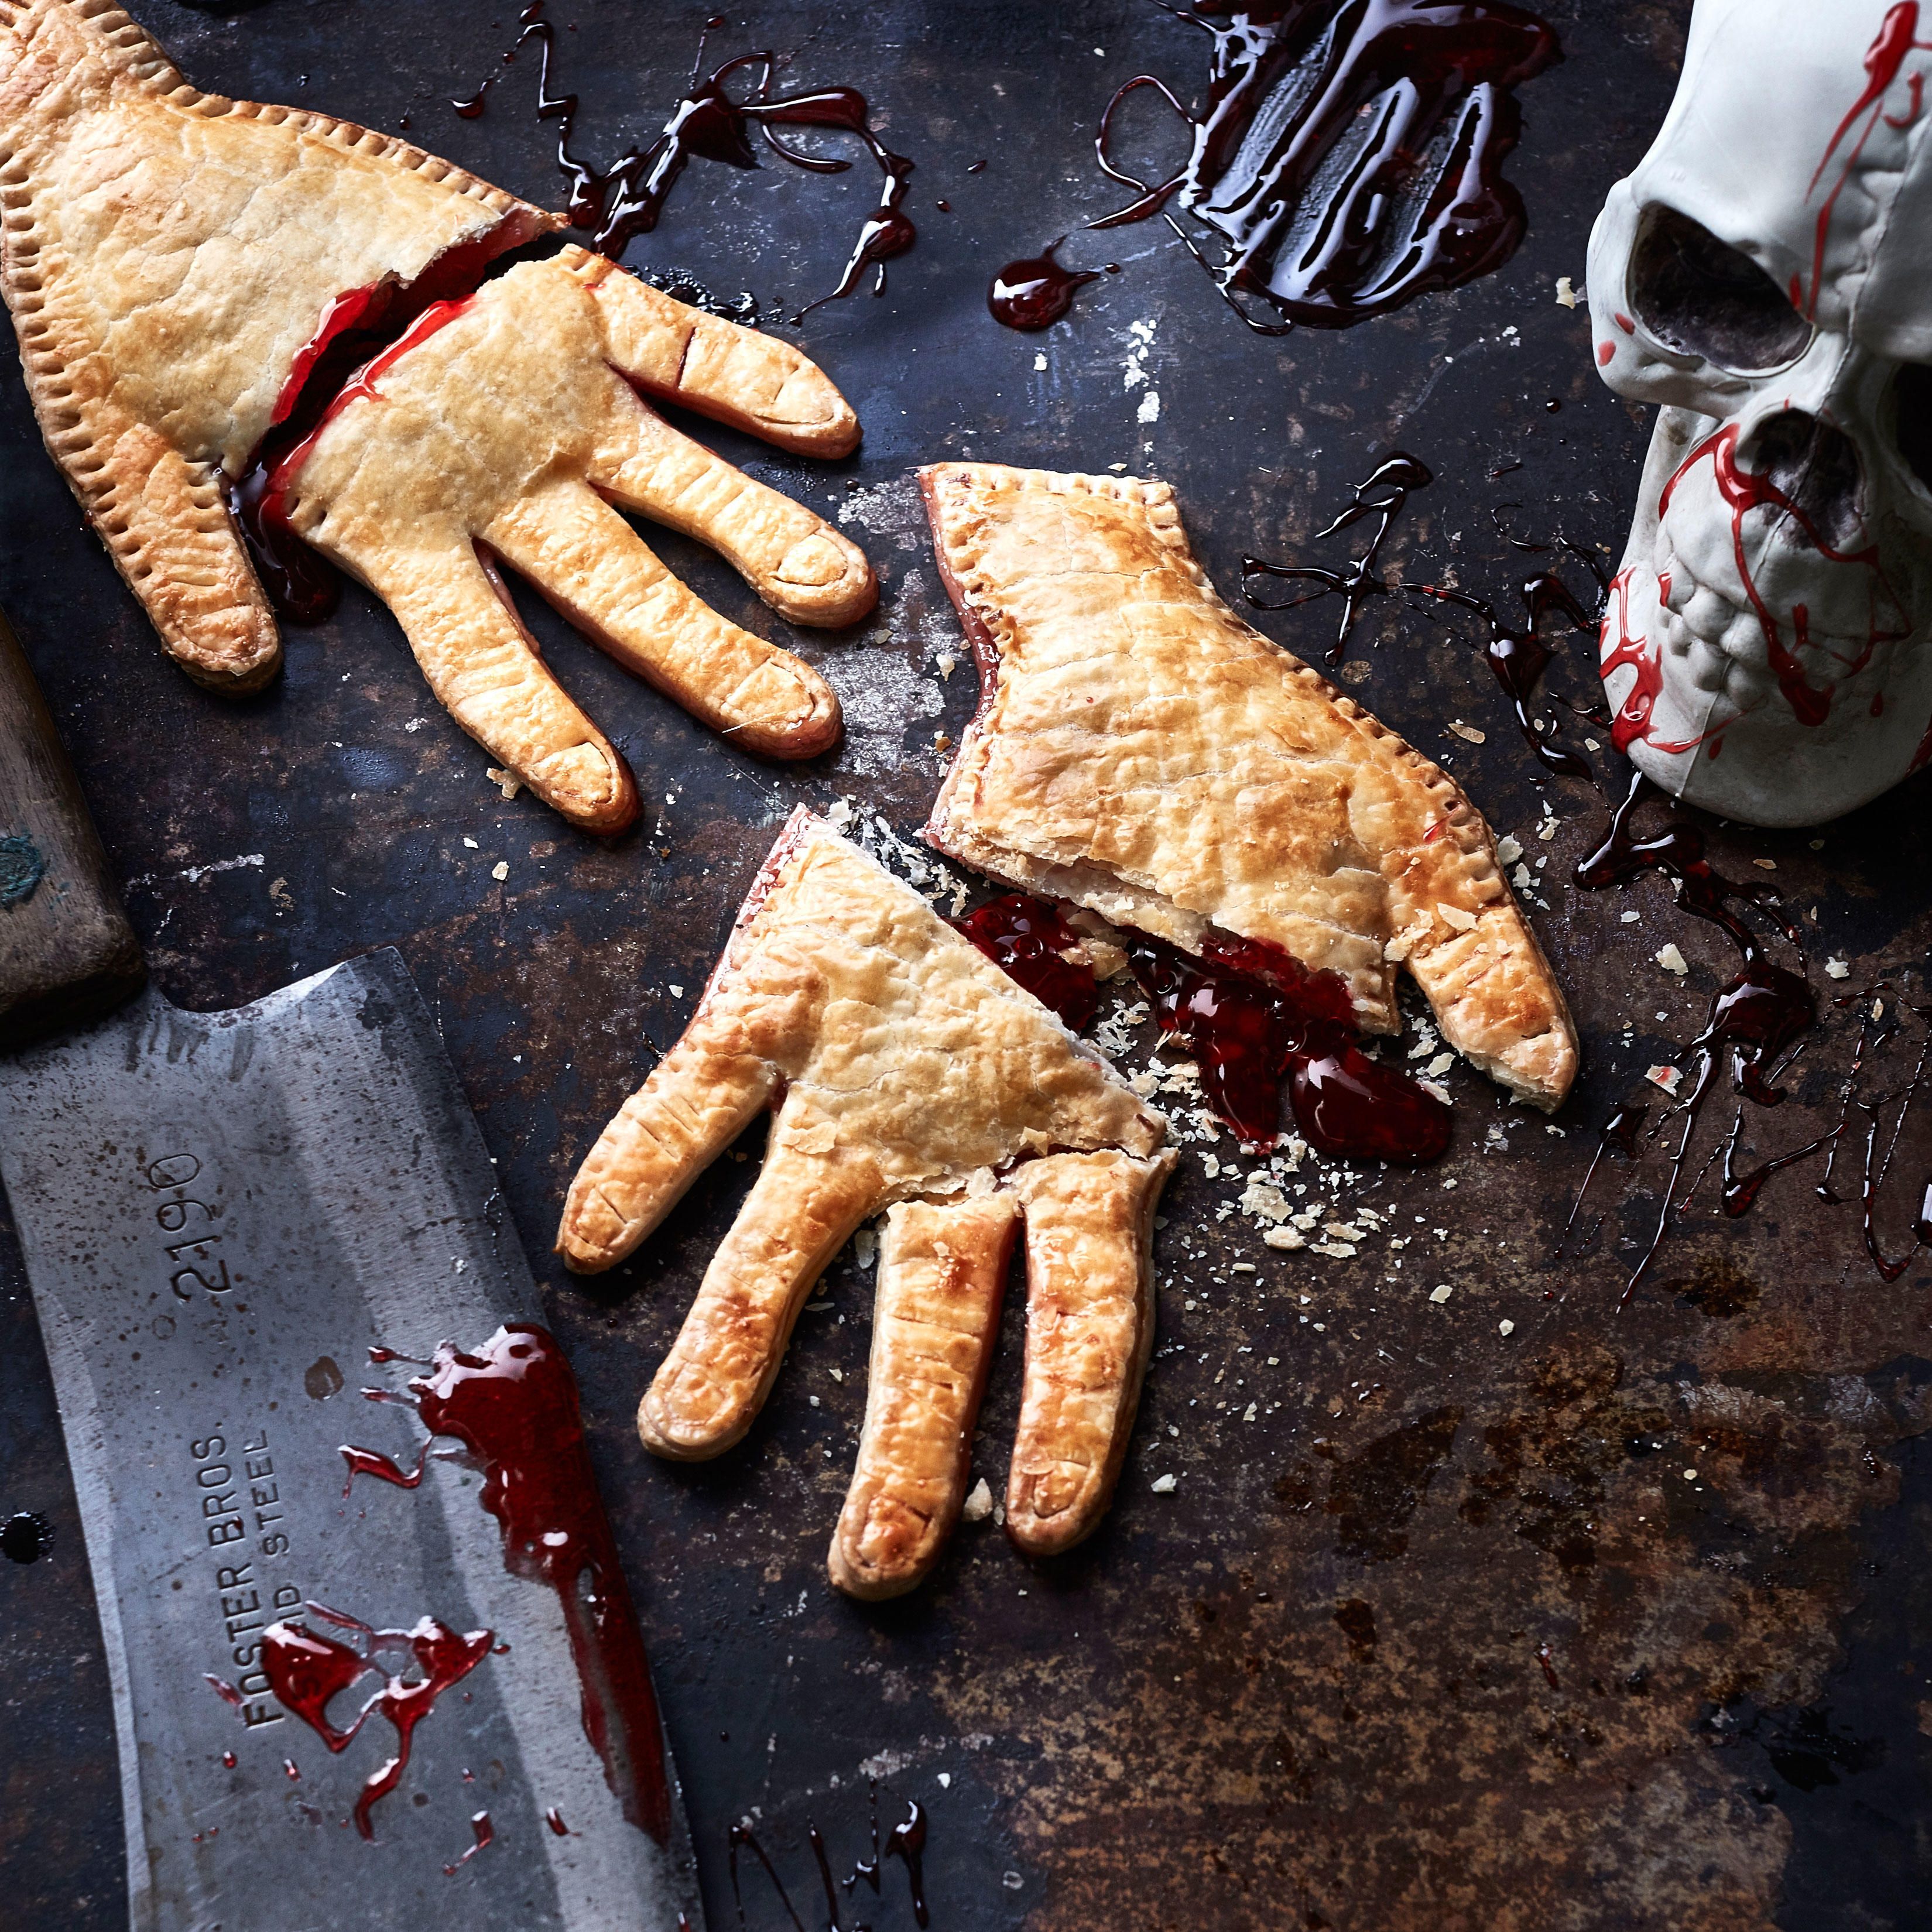 Severed Hand Pies image